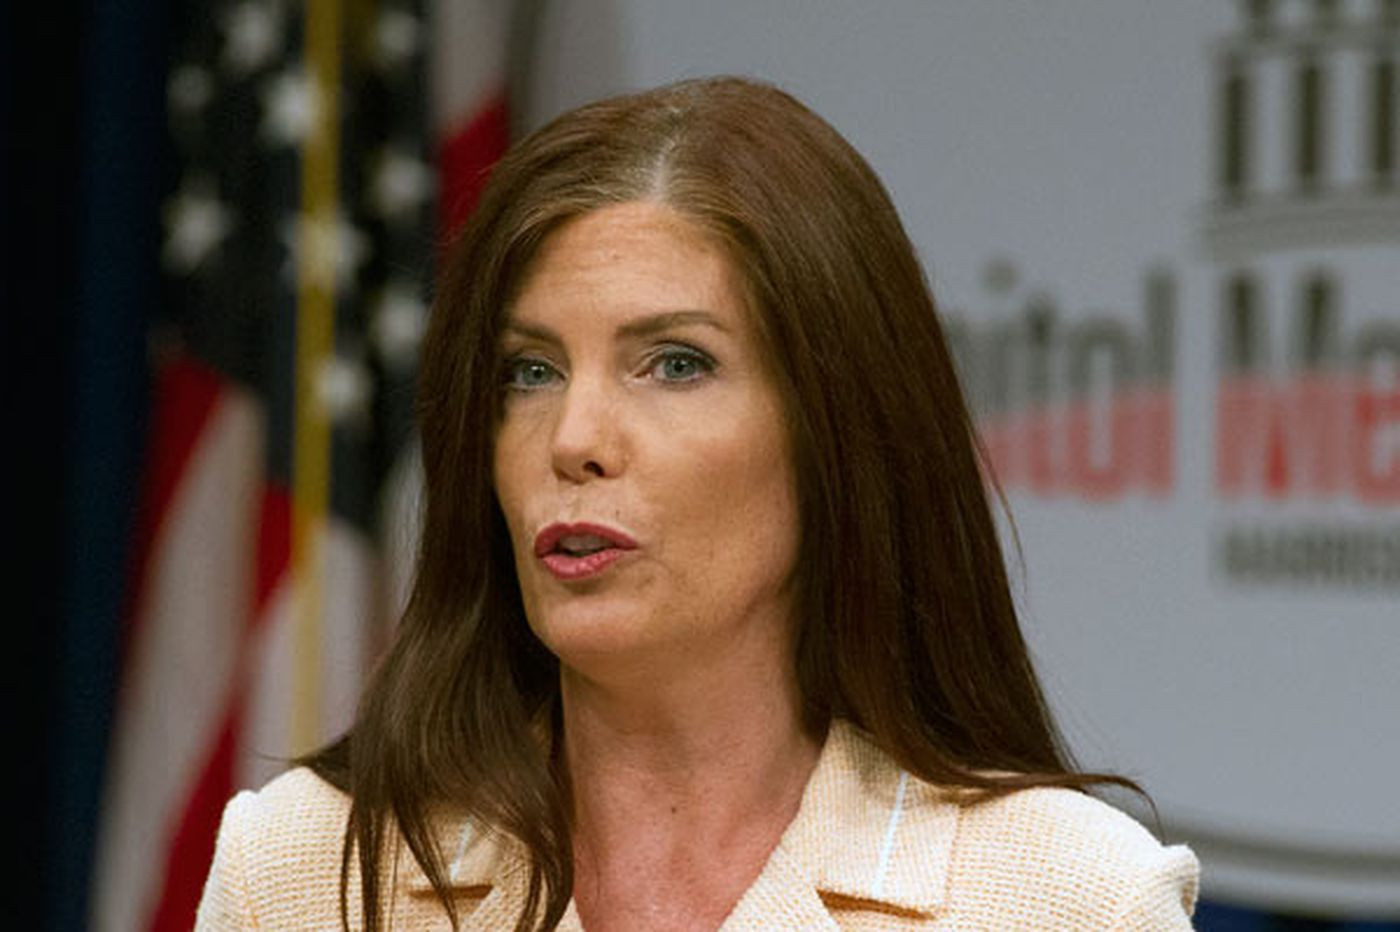 As prosecutors investigated Kane, they homed in on her private email